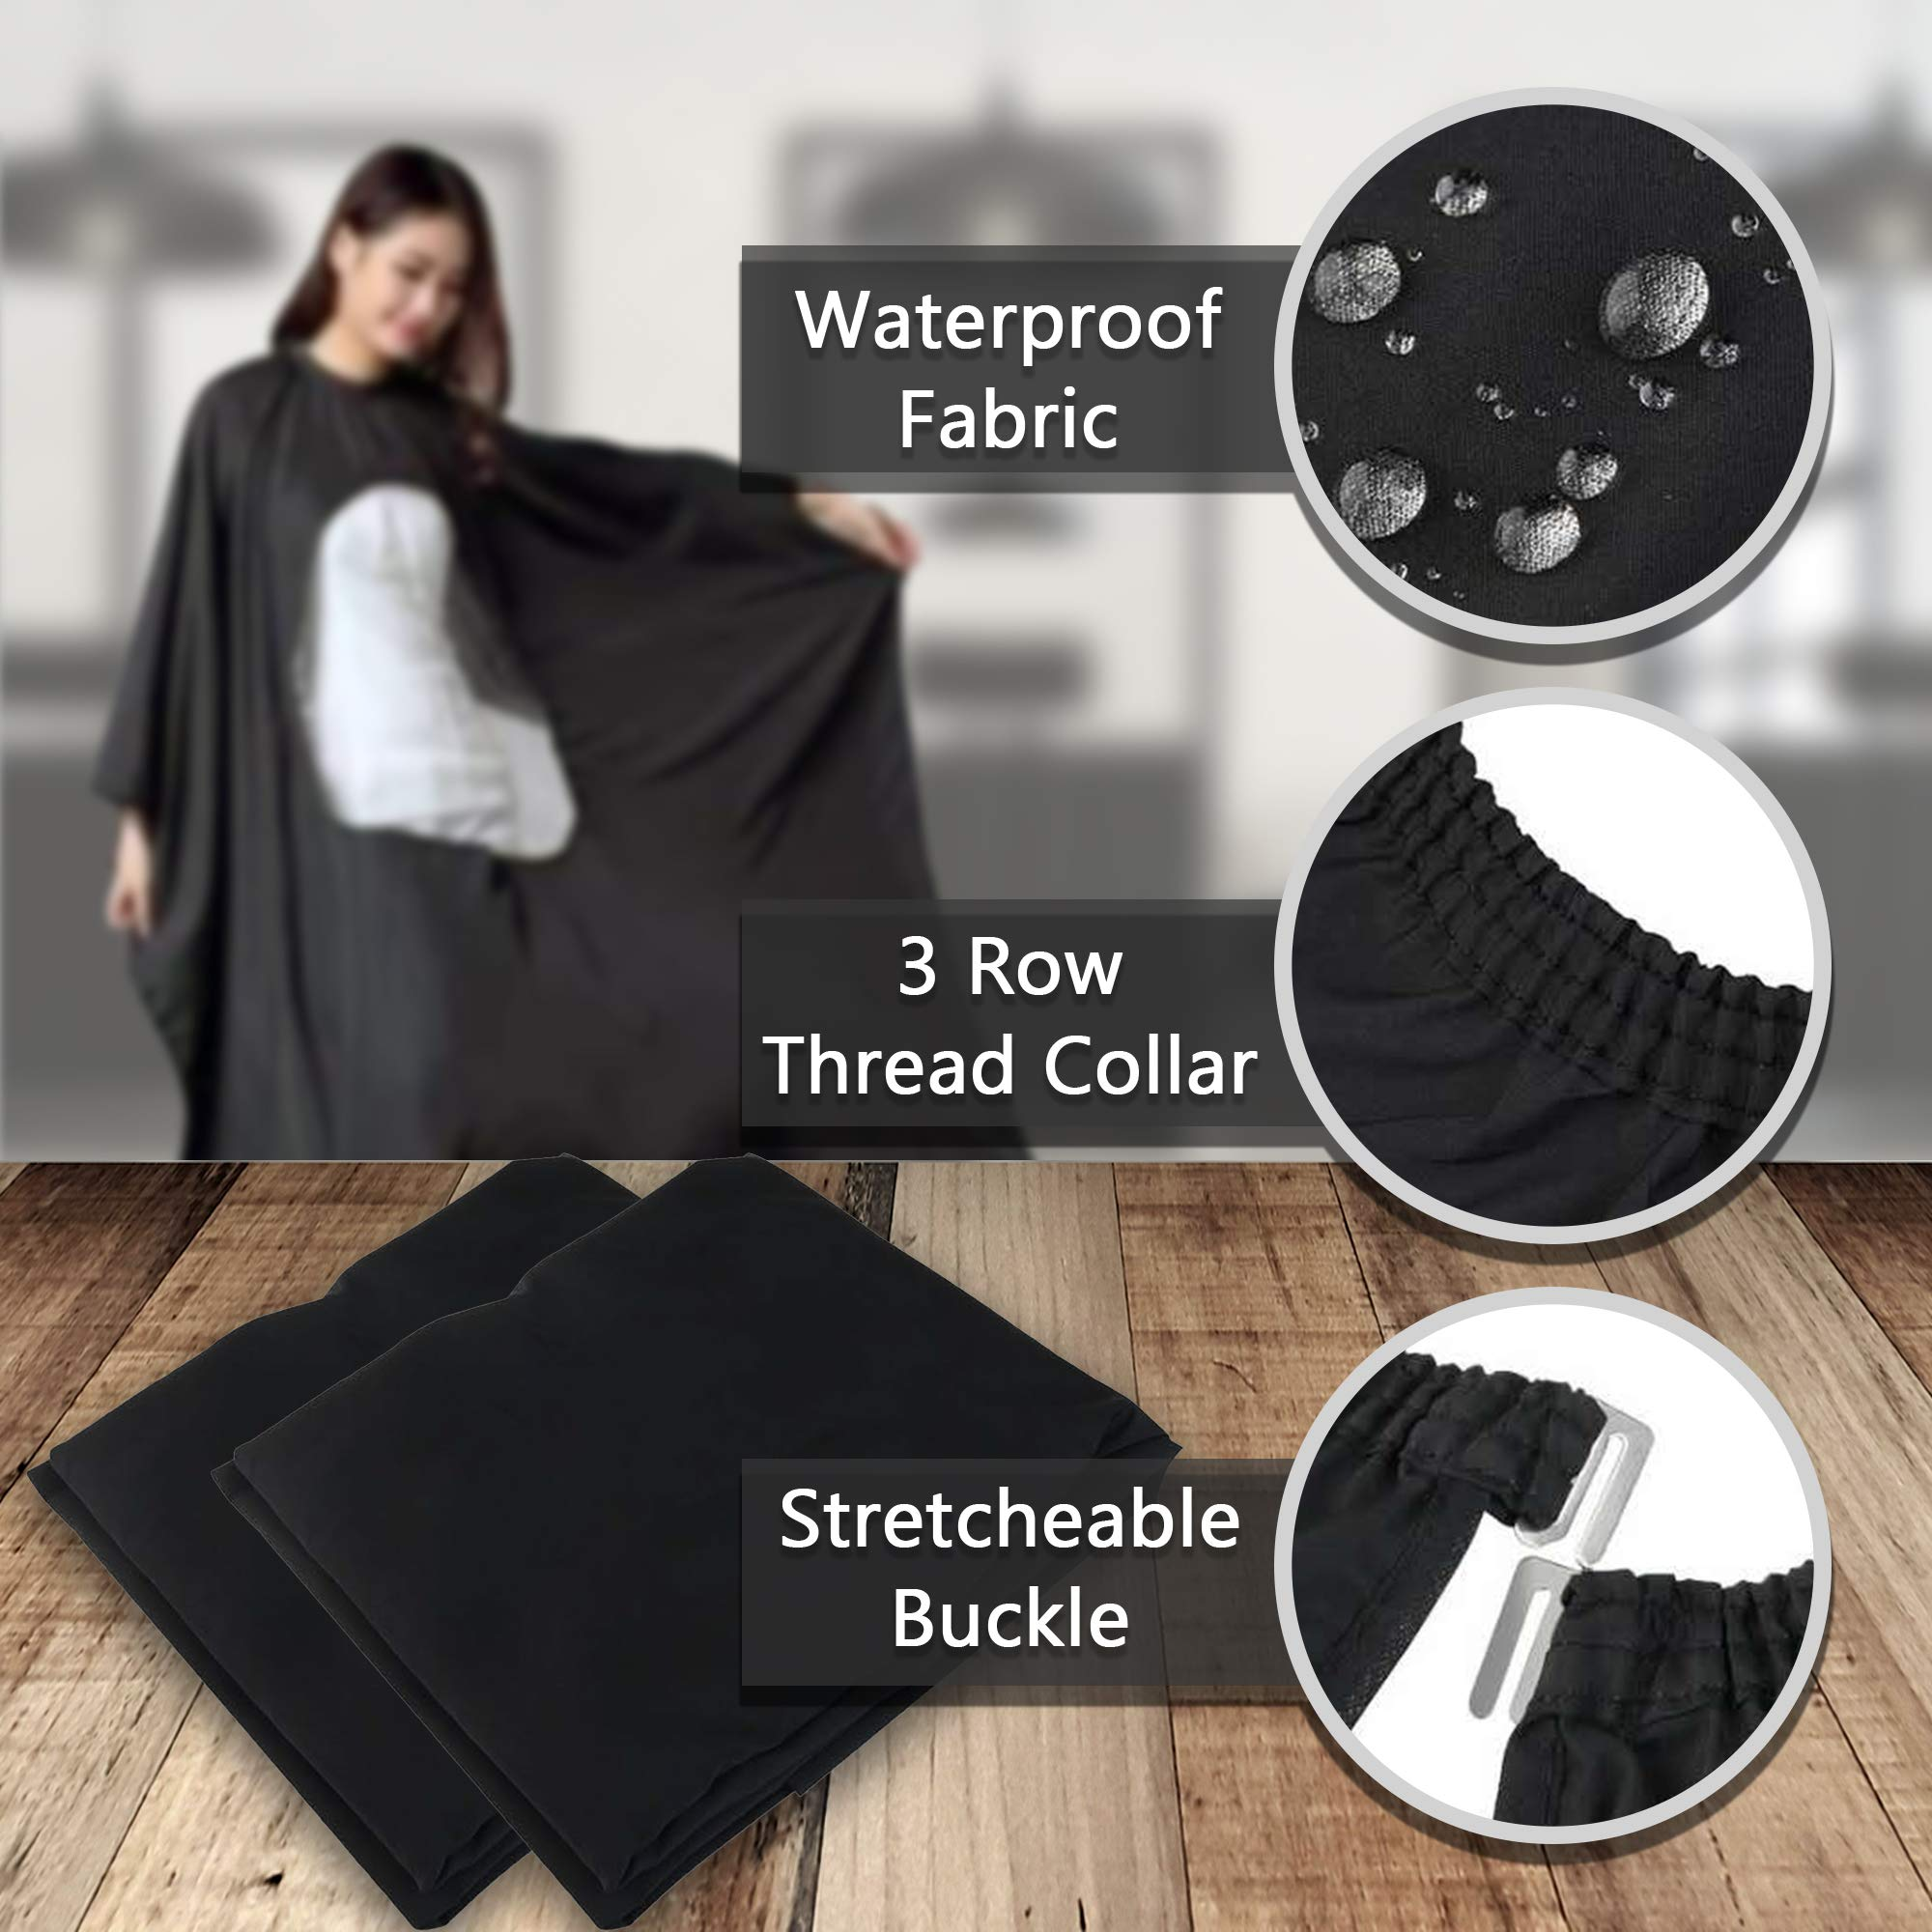 Celebrita Pack of 2 Waterproof Barber Cape for All - With Transparent Viewing Window – Perfect Salon Apron for Hair Treatment - Cutting/Coloring/Perming - All Shampoo Chemical Proof Hairdresser by Celebrita (Image #4)